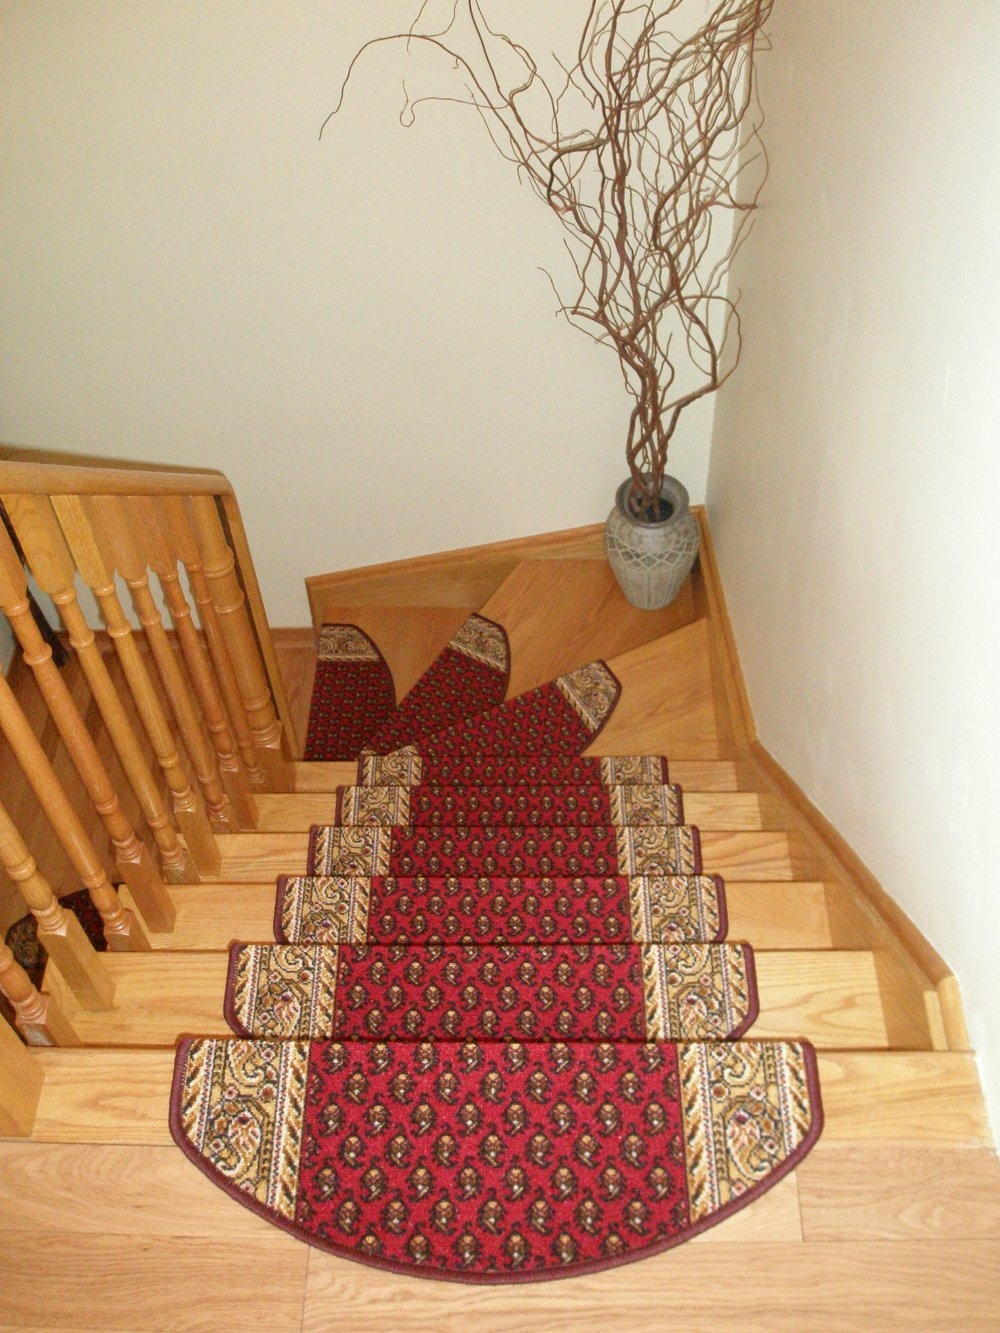 Carpet Stair Treads Stair Mats Stair Rugs Within Rug Runners For Stairs (#5 of 20)